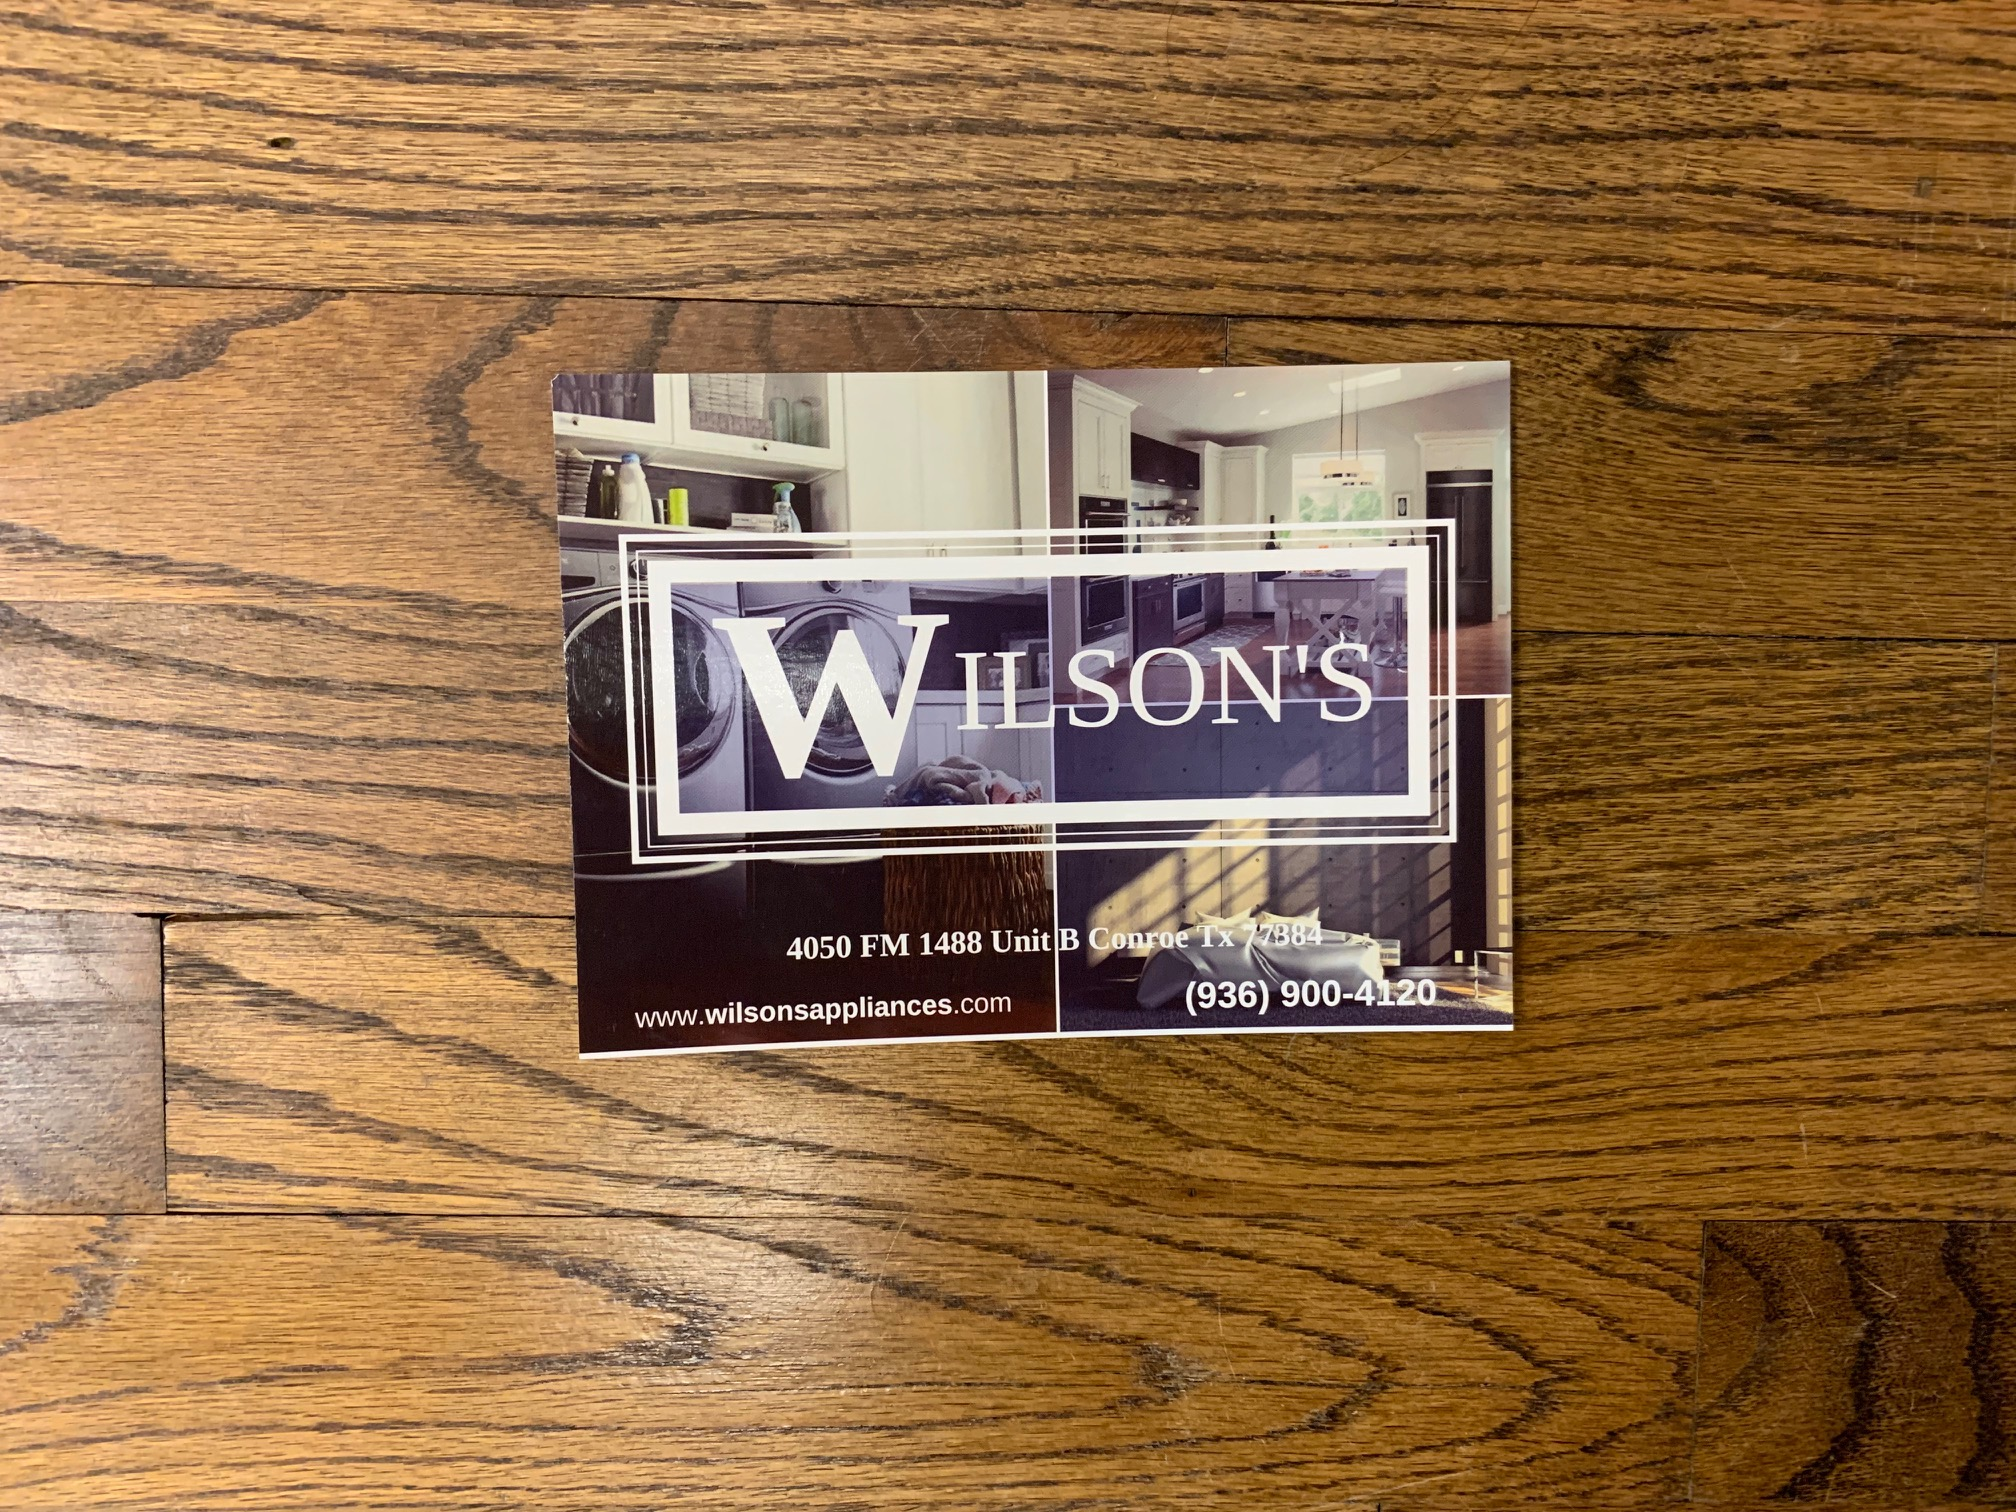 wilson's appliances & mattresses shop in conroe, coupons